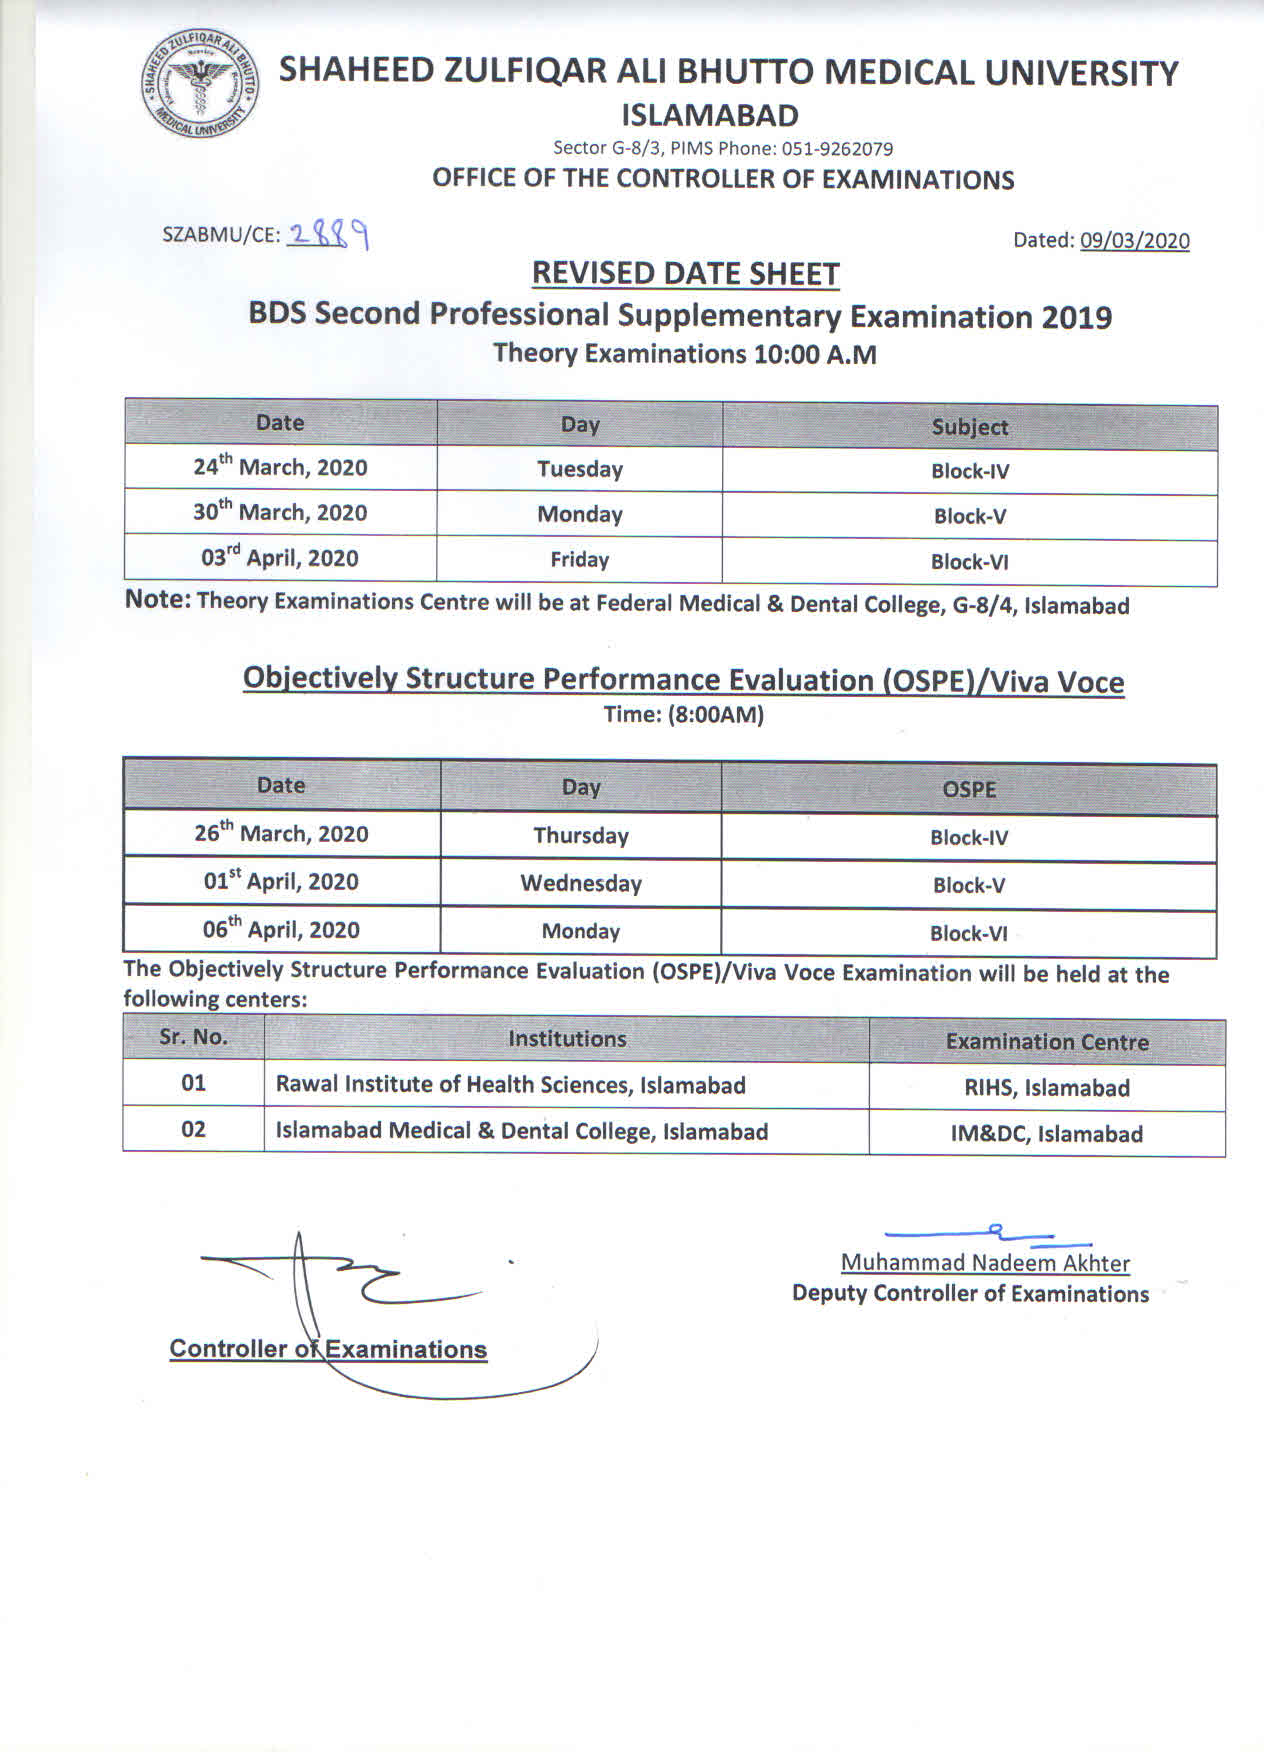 Revised Date Sheet - BDS Second professional supplementary examinations 2019